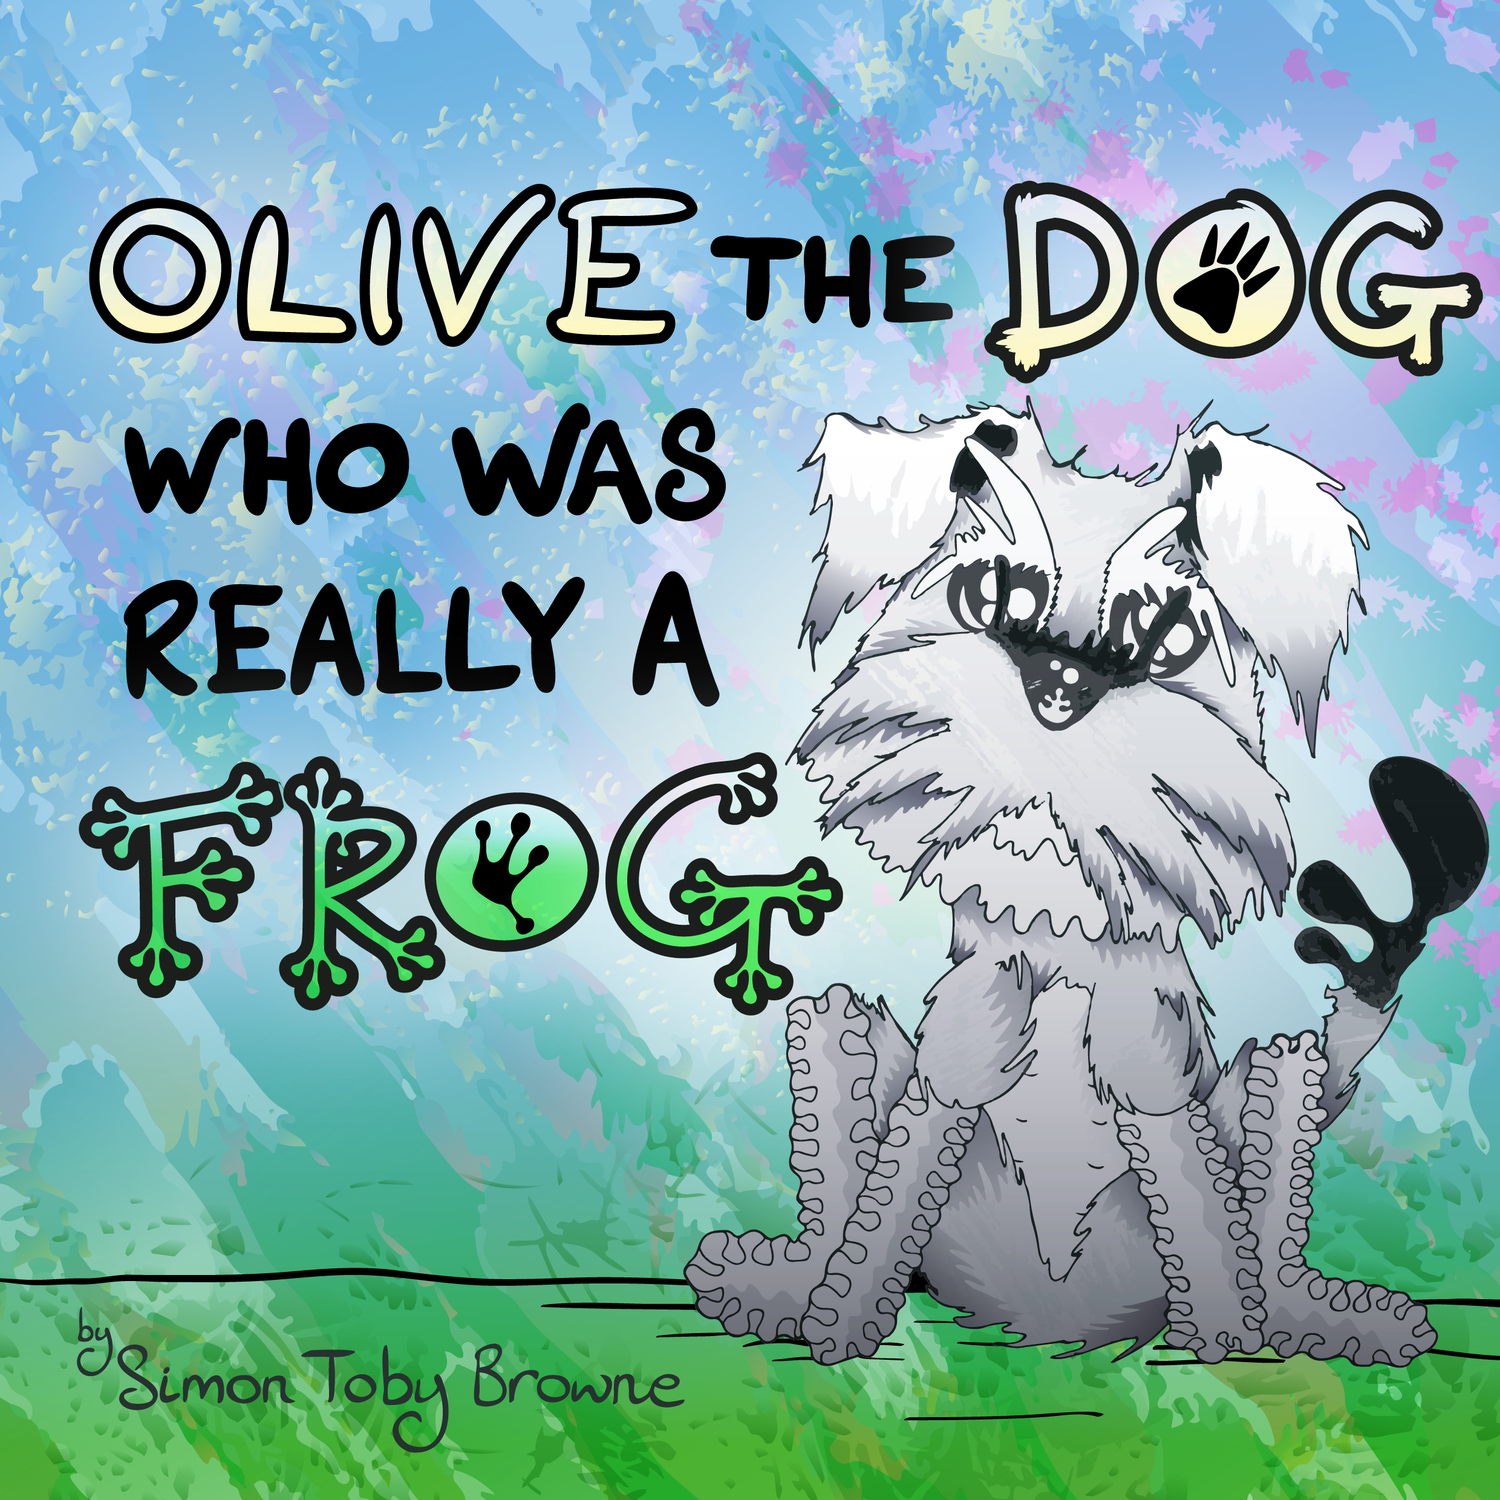 olive the dog who was really a frogby simon toby Browne - A picture book inspired by identity, with a message about acceptance and promoting strength through diversity. Olive The Dog Who Was Really A Frog encourages individual differences to be universally accepted, to nurture friendships and promote strength through diversity.